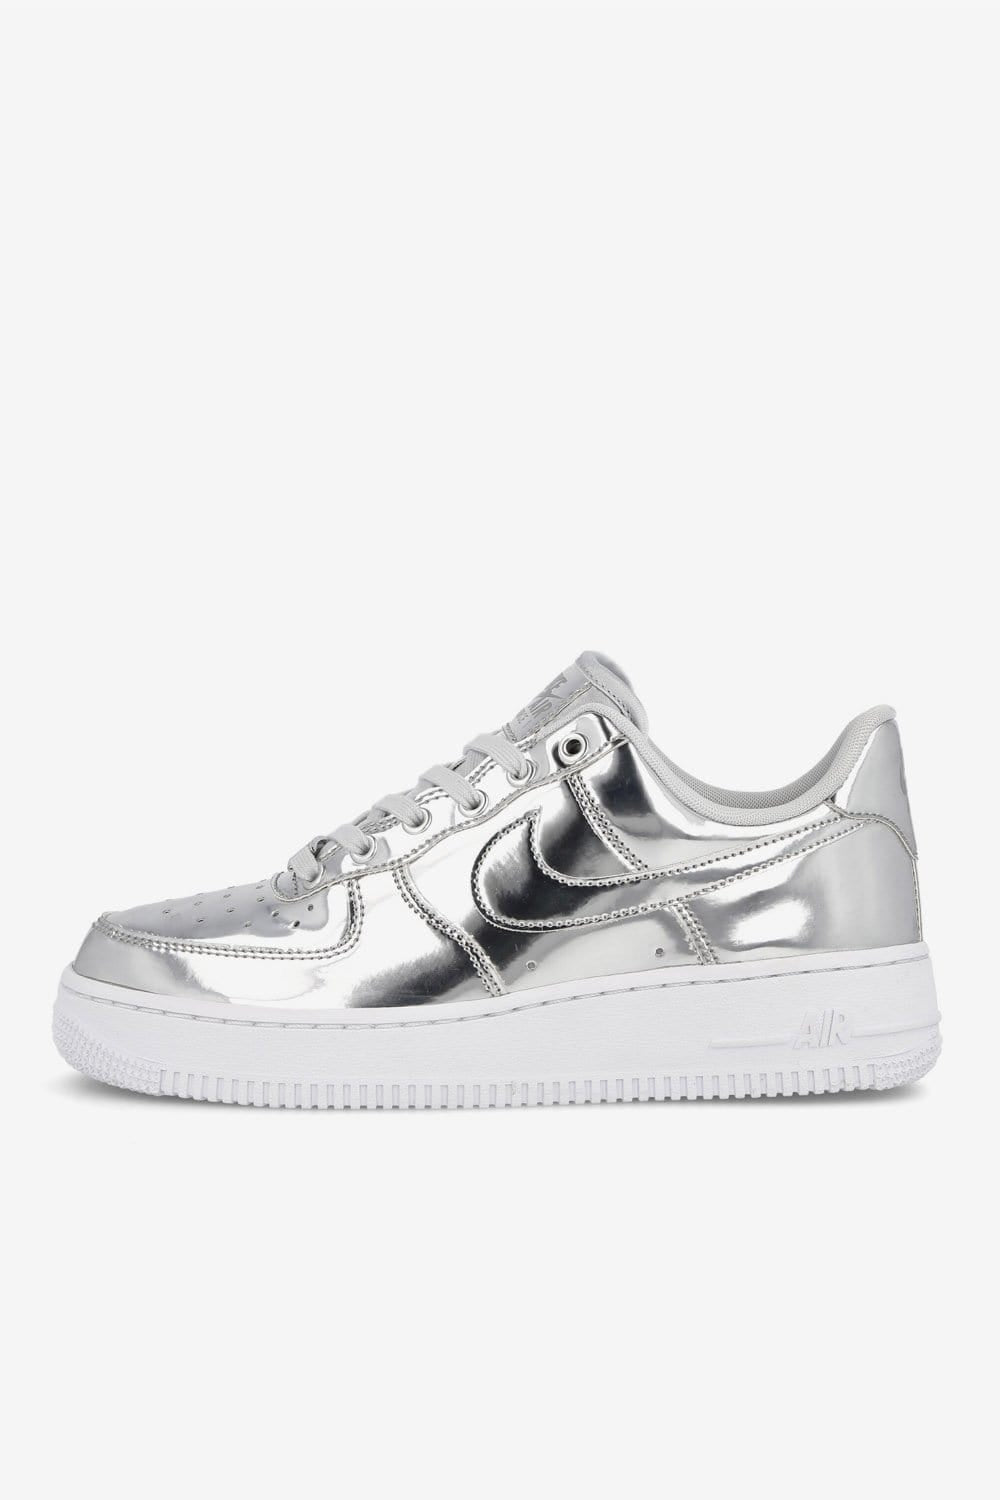 Air Force 1 SP WMNS